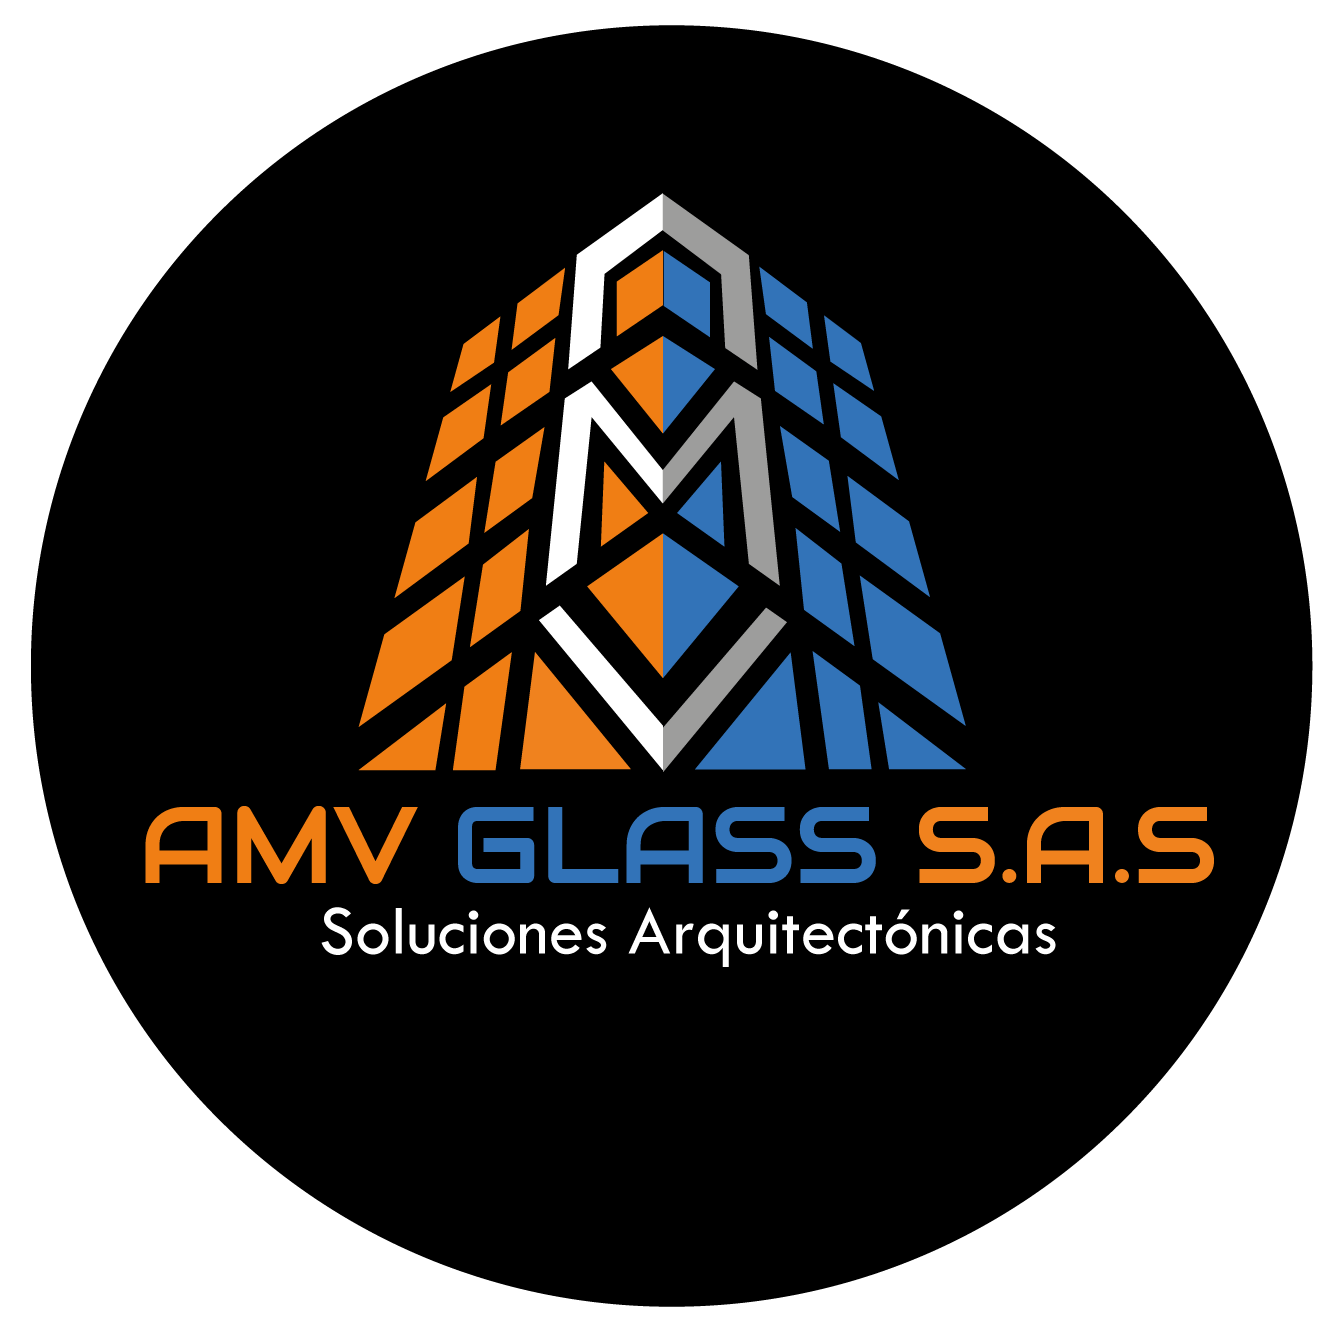 Logo-AMV-Glass-S.A.S.